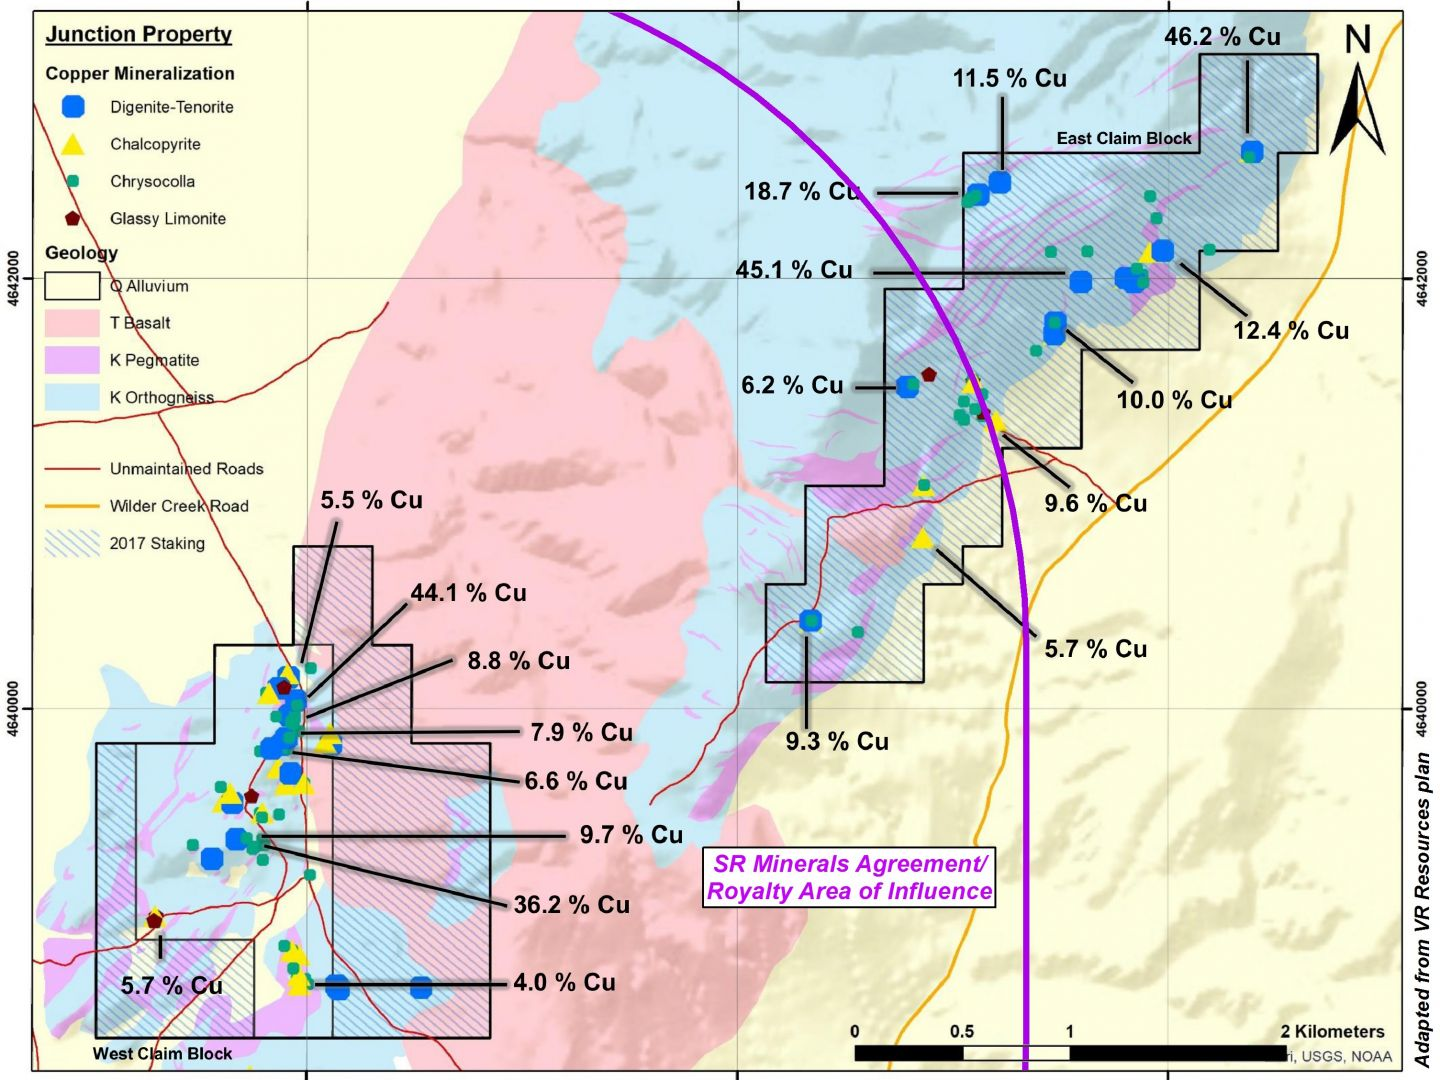 Junction Property - SR Minerals Agreement & Royalty Area of Influence